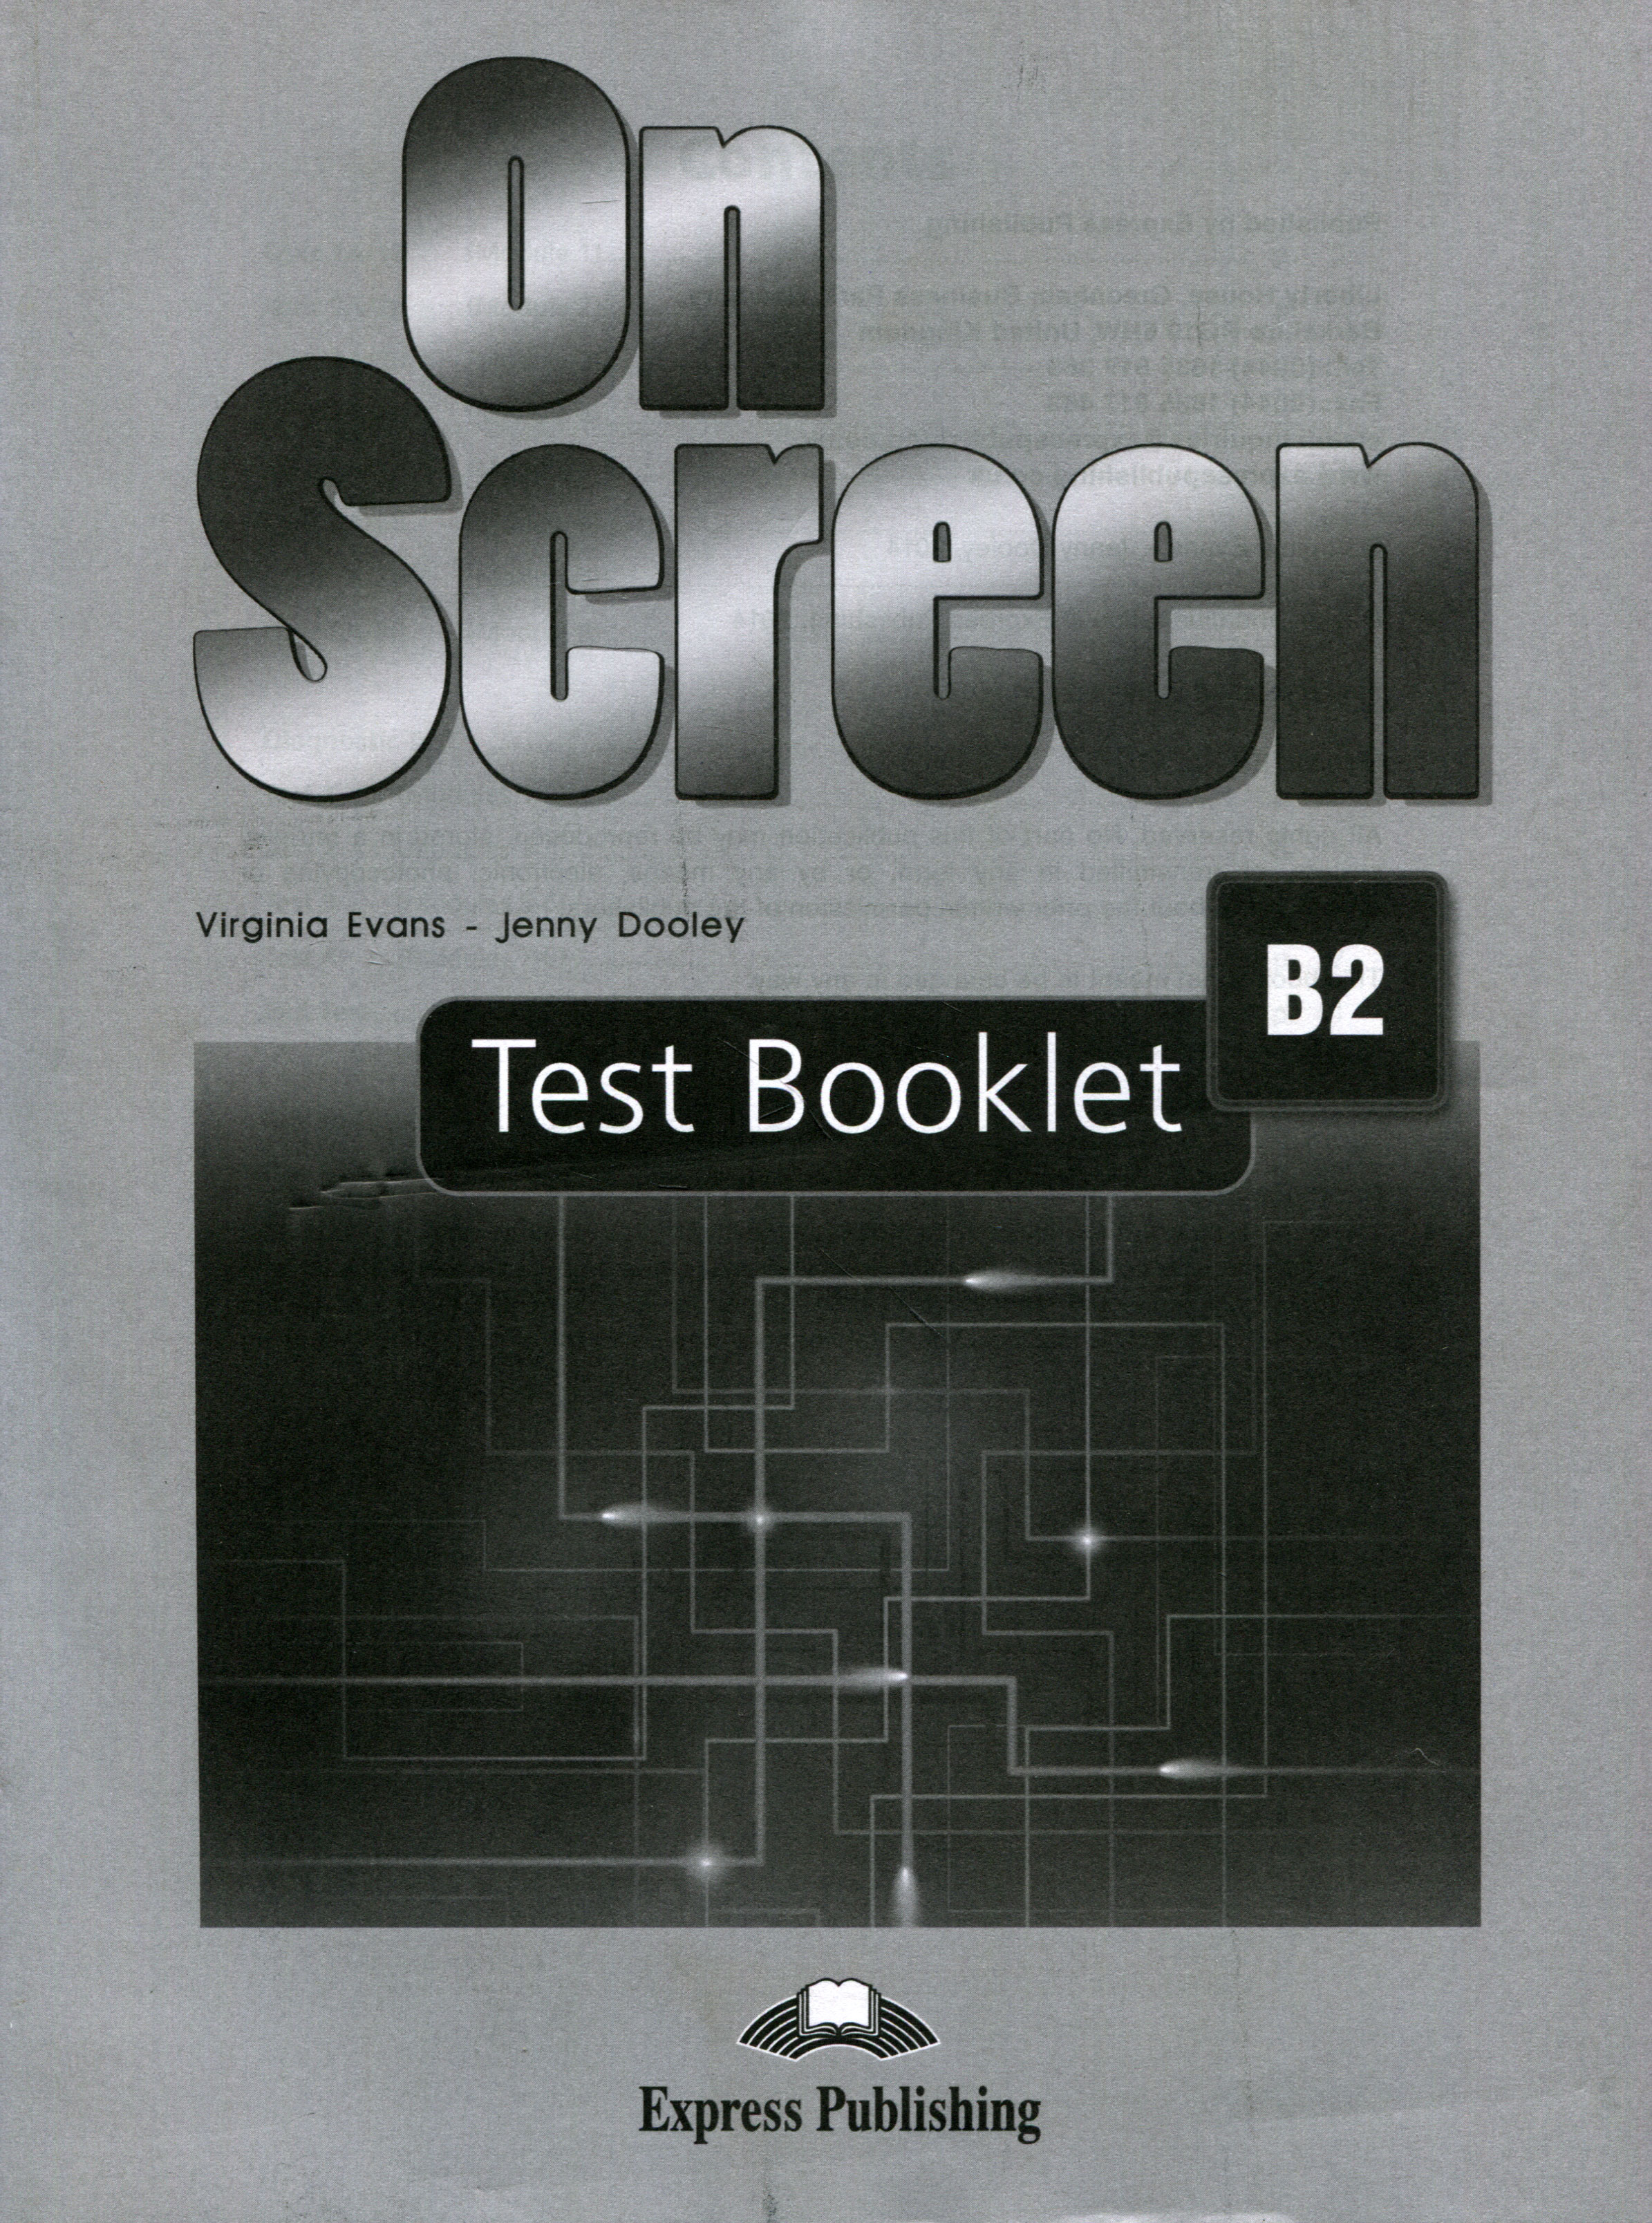 On Screen B2: Test Booklet, Virginia Evans, Jenny Dooley